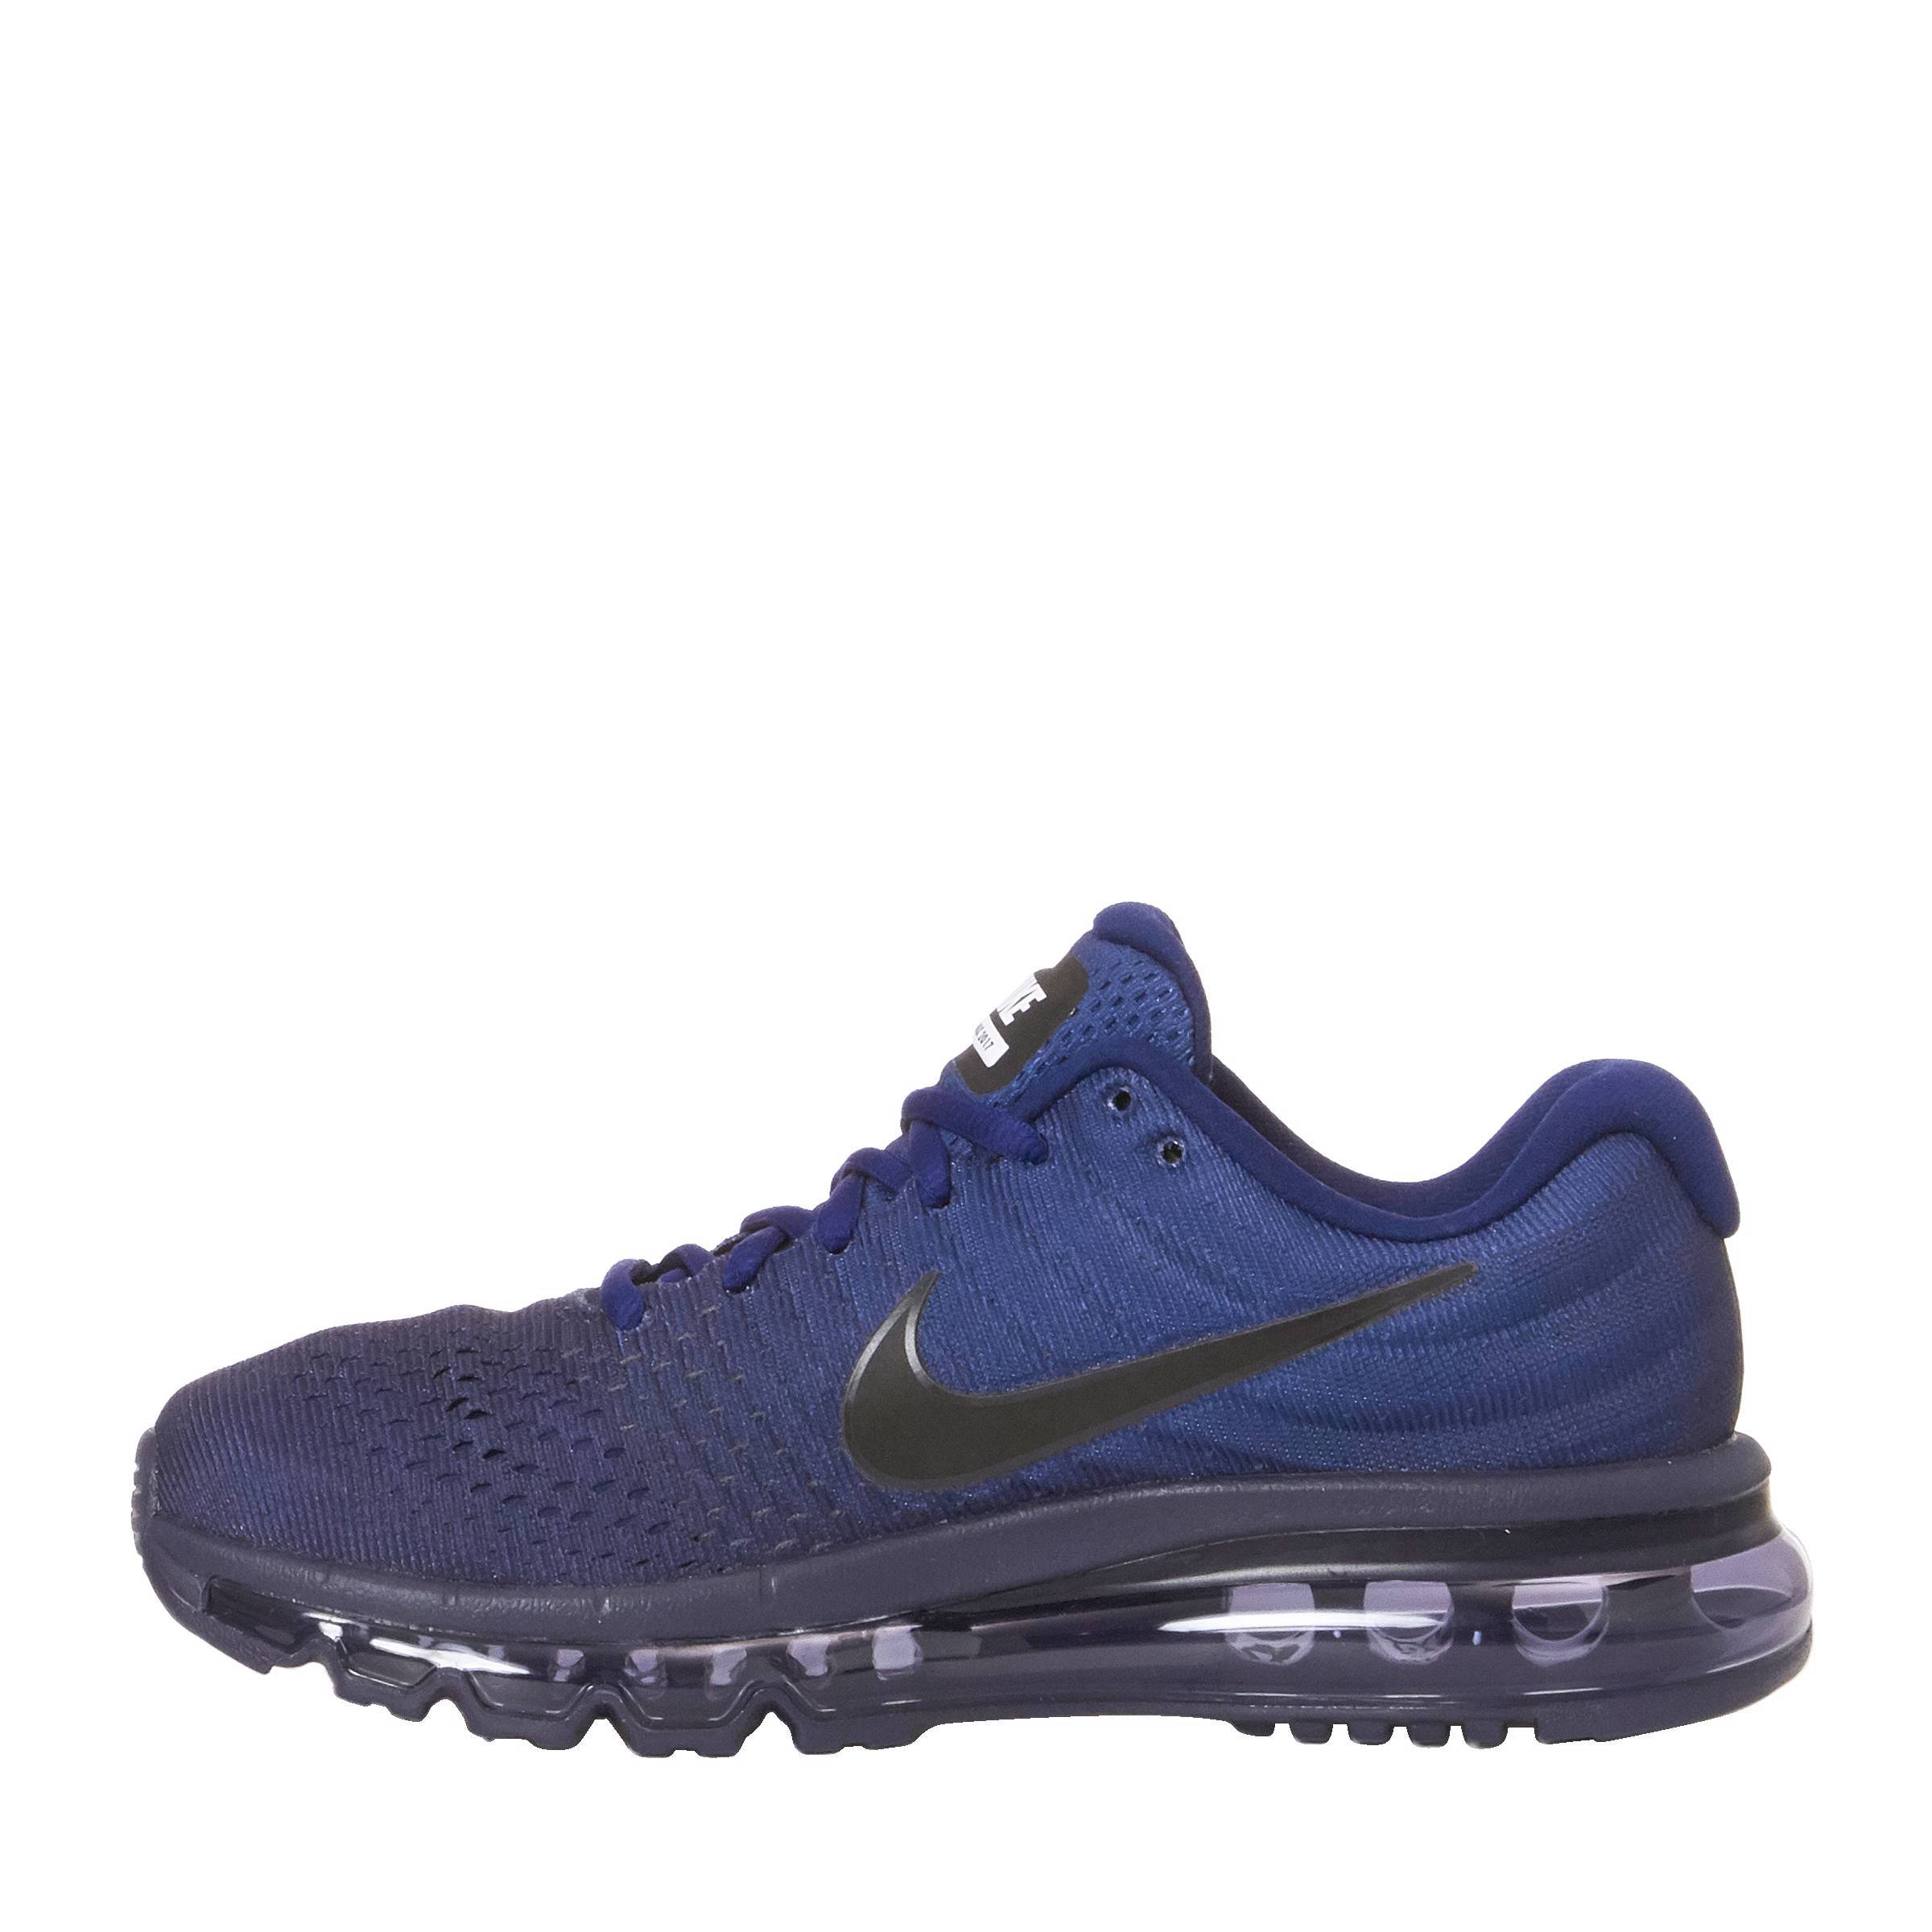 new style 80848 95ce9 nike-air-max-2017-sneakers-donkerblauw-0887225864835.jpg